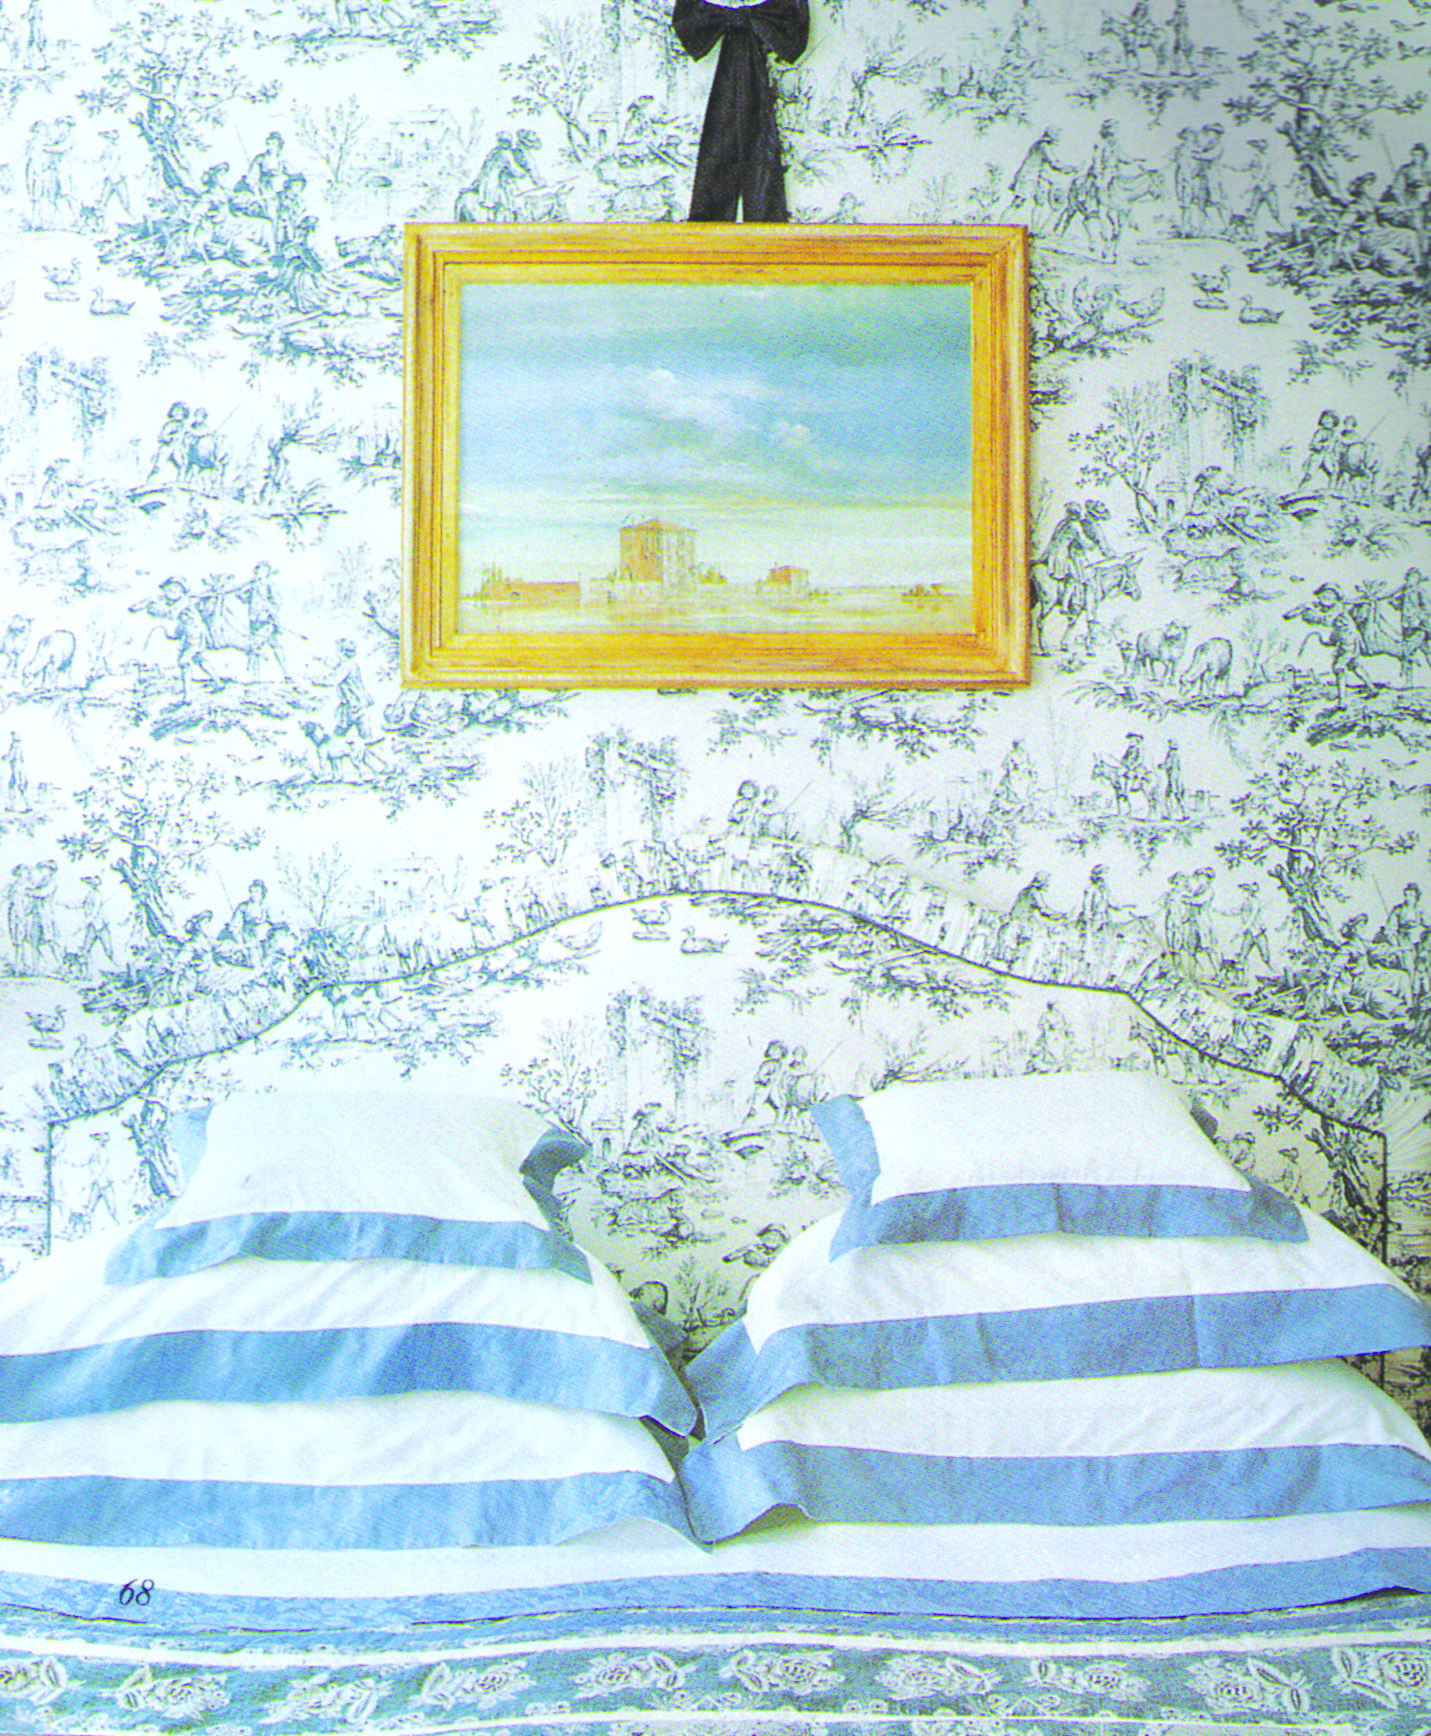 Blue toile wallpaper, gilded frame and blue-banded linens: Victoria magazine, June 1999